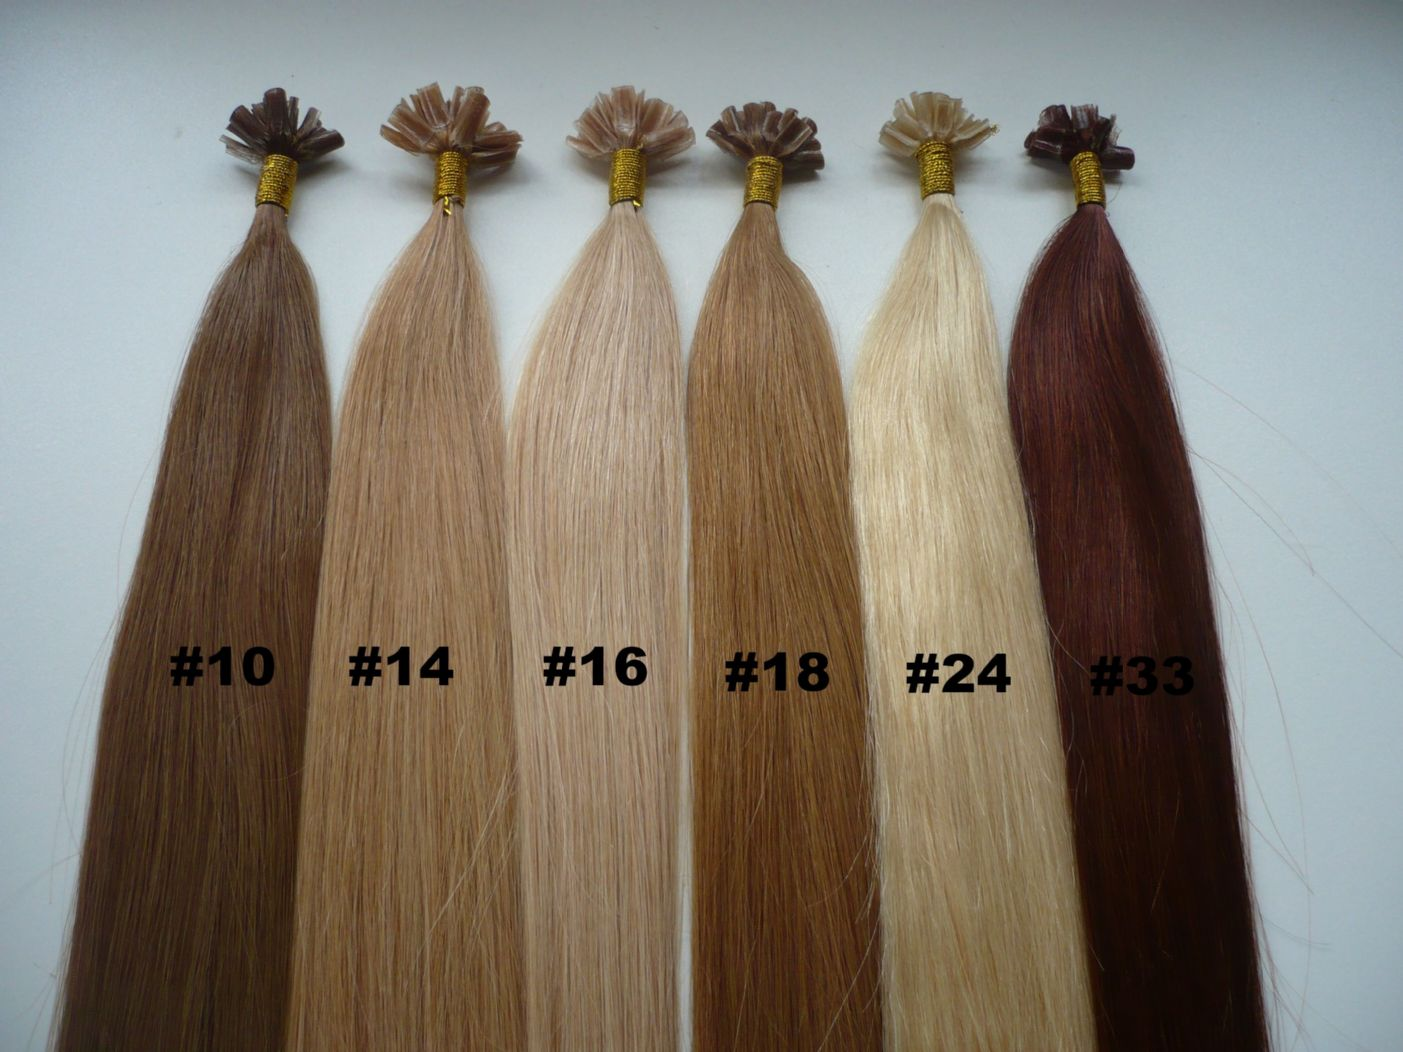 Auburn red color nail tip u tip fusion remy human hair extension auburn red color nail tip u tip fusion remy human hair extension buy auburn red nail tipu tip hot fusion remy human hair extensionauburn red keratin nvjuhfo Choice Image